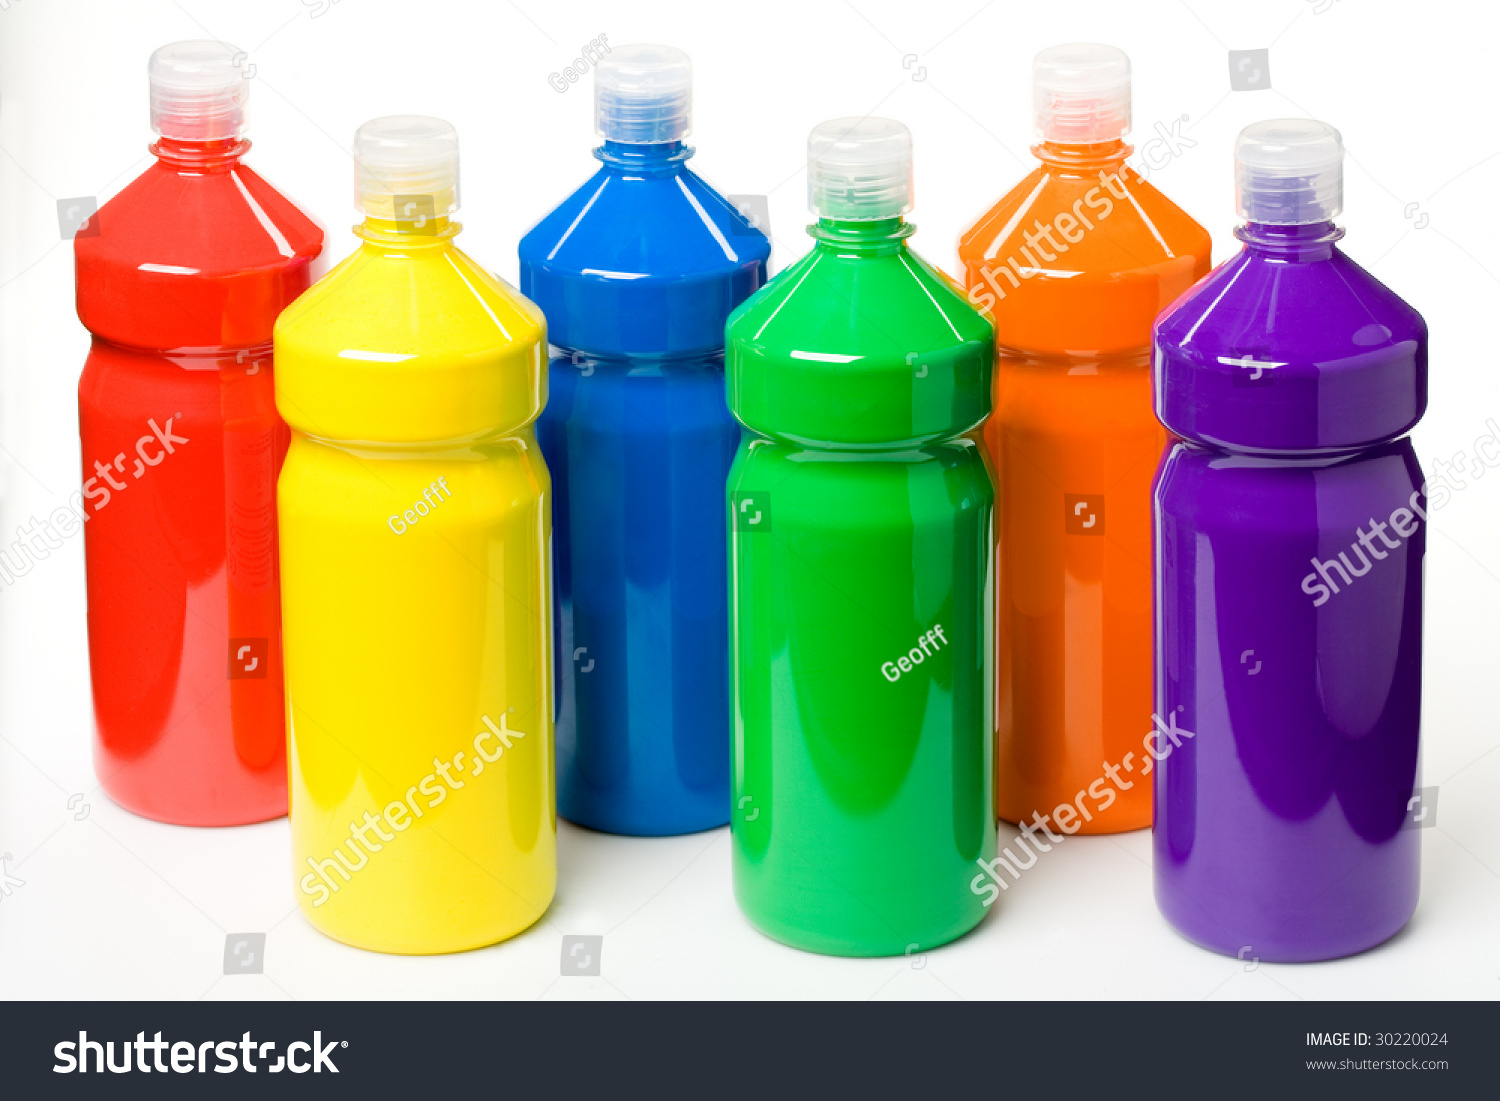 What Paint Can I Use On Glass Bottles